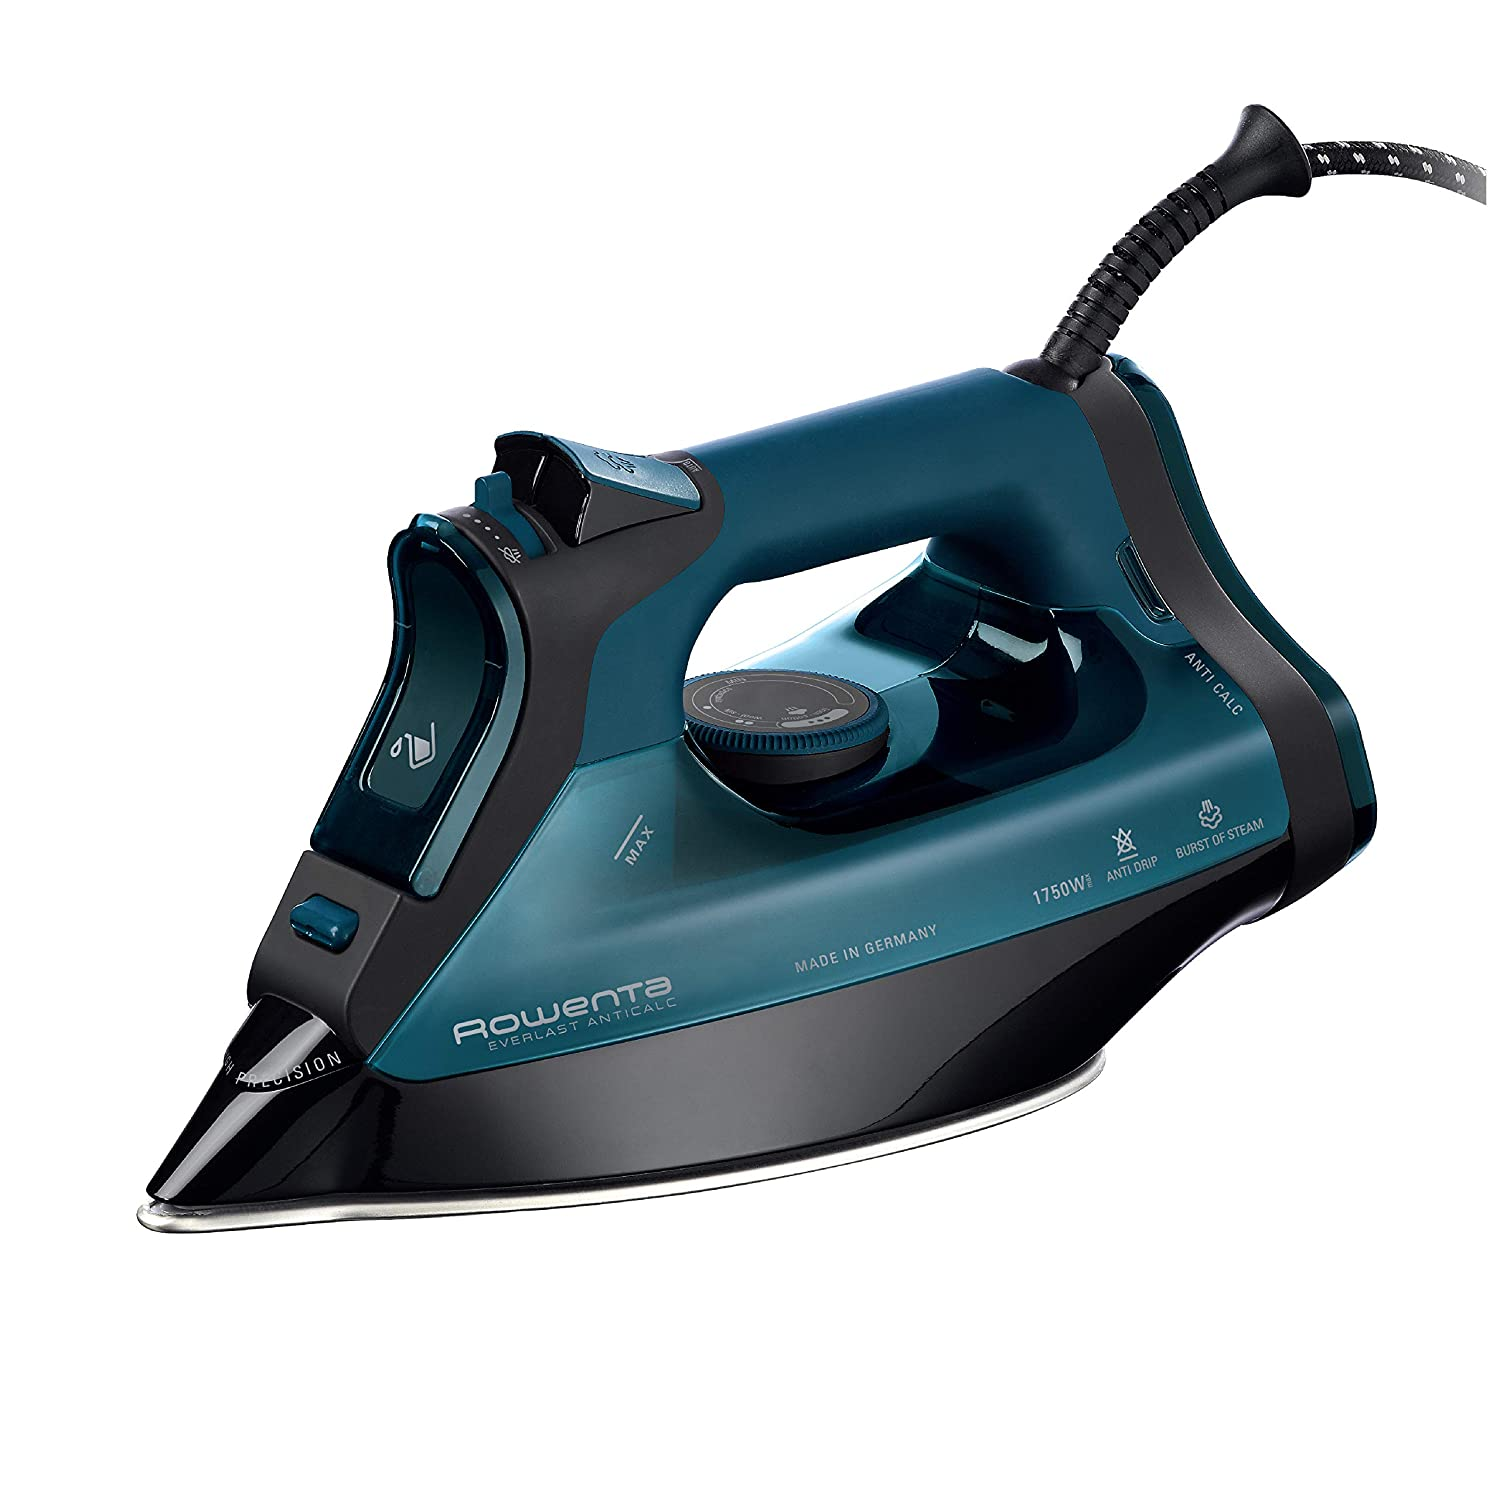 Rowenta DW7180 Everlast 1750-Watt Anti-Calc Steam Iron